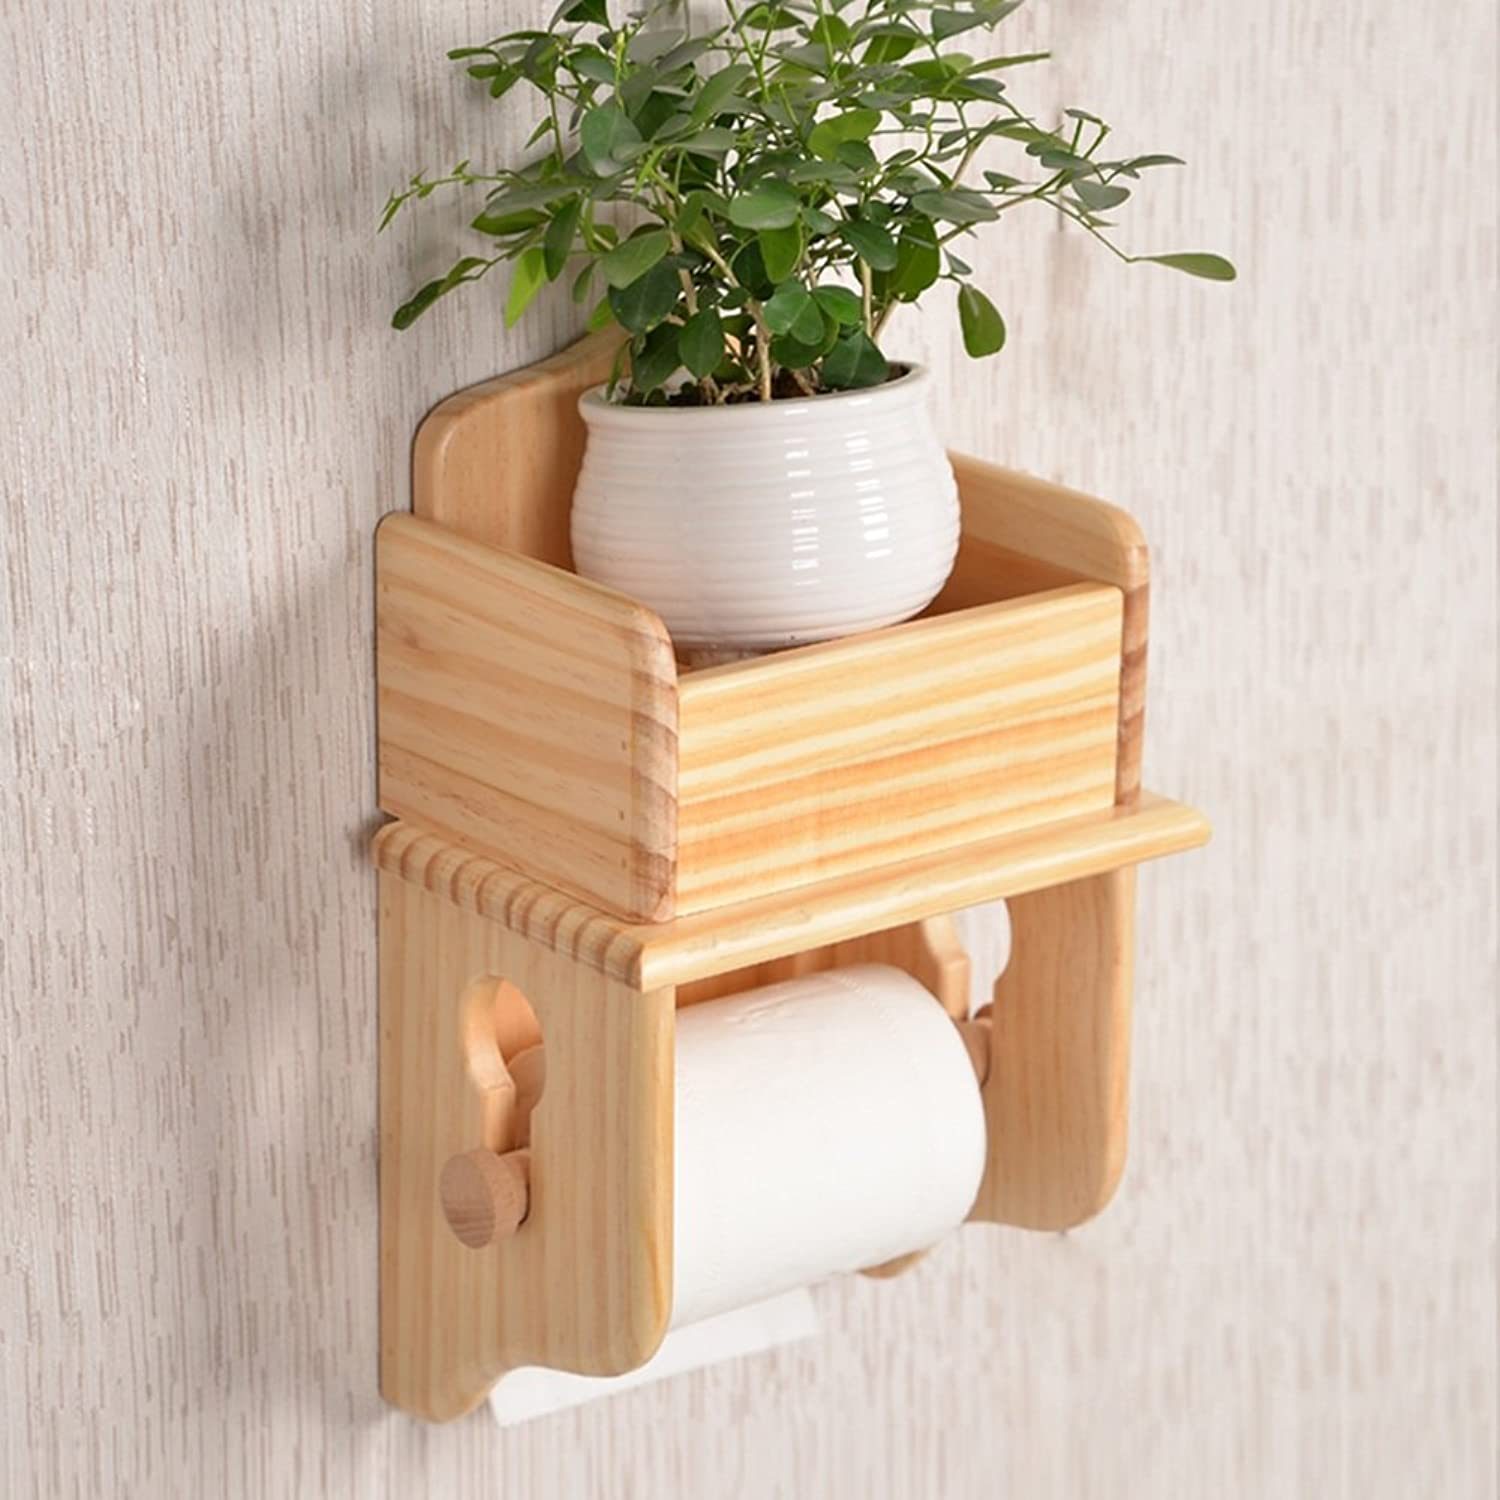 WENZHE Over Toilet Bathroom Toilet Roll Holder Storer Wall Mounted Tissue Box Tower Hanger Woody, 2 Models Storage Racks Unit (color   Pine)